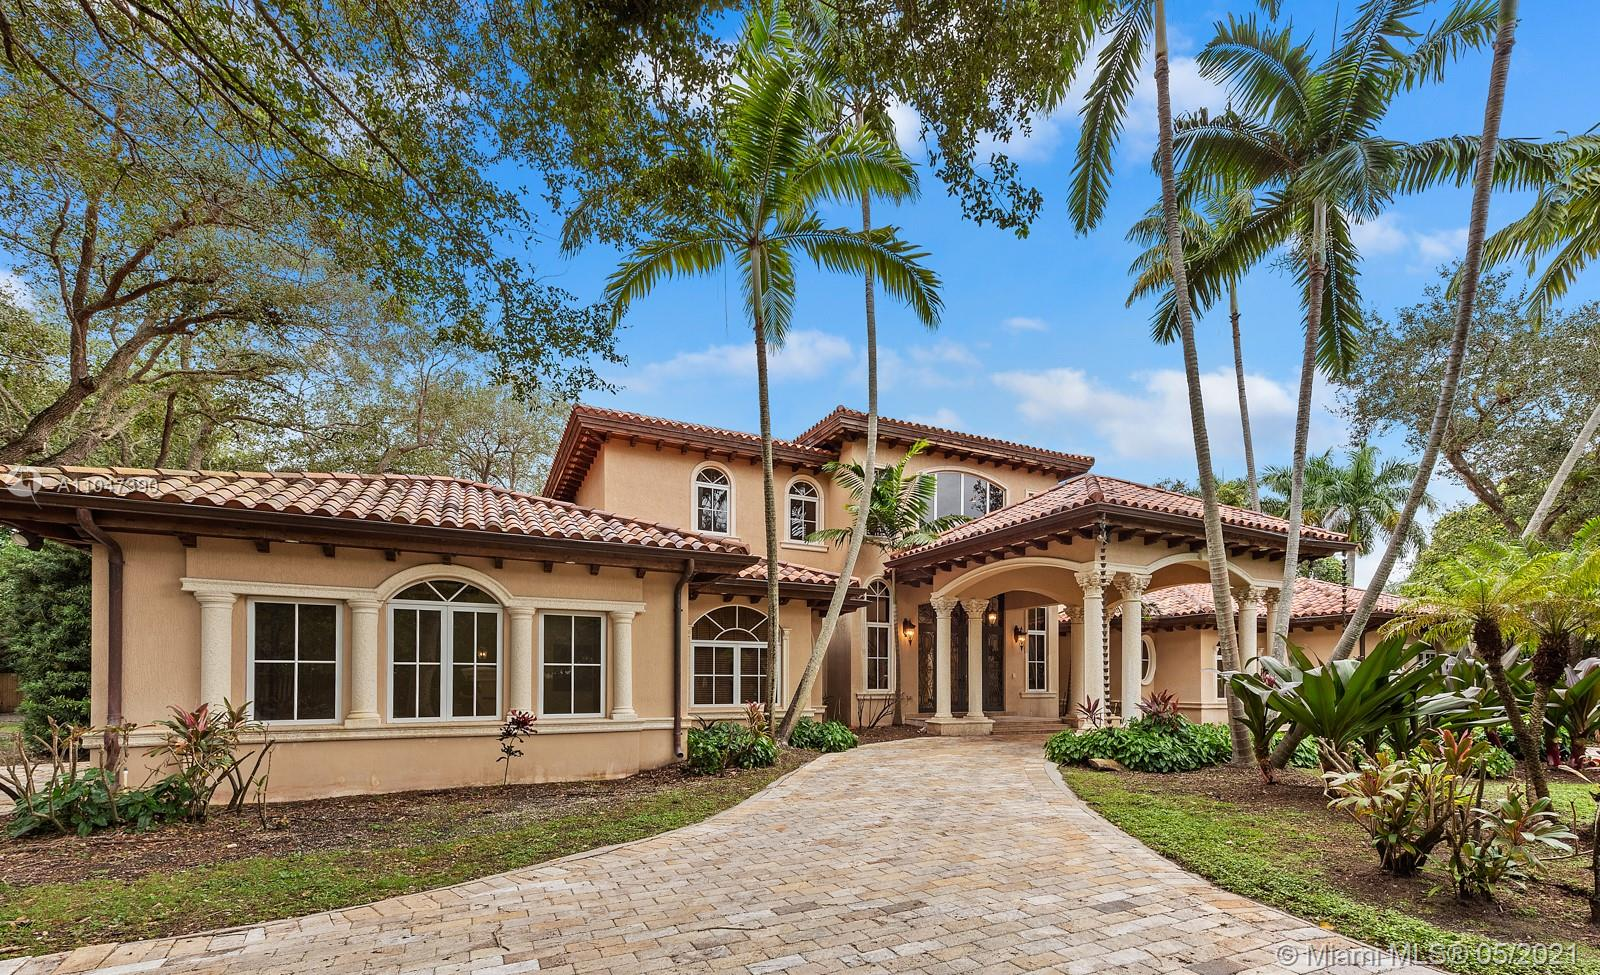 A Beautiful classic! This two-story Mediterranean estate home sits on a 38,000 Sq. Ft. gated lot in sought-after N Pinecrest, surrounded by gorgeous landscaping. The entrance has soaring ceilings with a staircase accented by classic columns—travertine floors throughout w/floor-to-ceiling windows. The master suite located on the first floor has a lavish marble bathroom and steam room. Upstairs there are four additional ensuite bedrooms. This home is perfect for entertaining with fantastic living spaces, including a formal living, dining, family/game room & chef's kitchen featuring all top-tier appliances. It offers ample exterior entertainment areas with modern integration and a resort-style pool. Additionally, the property includes a summer kitchen,4 car garage & guest/maid's room.